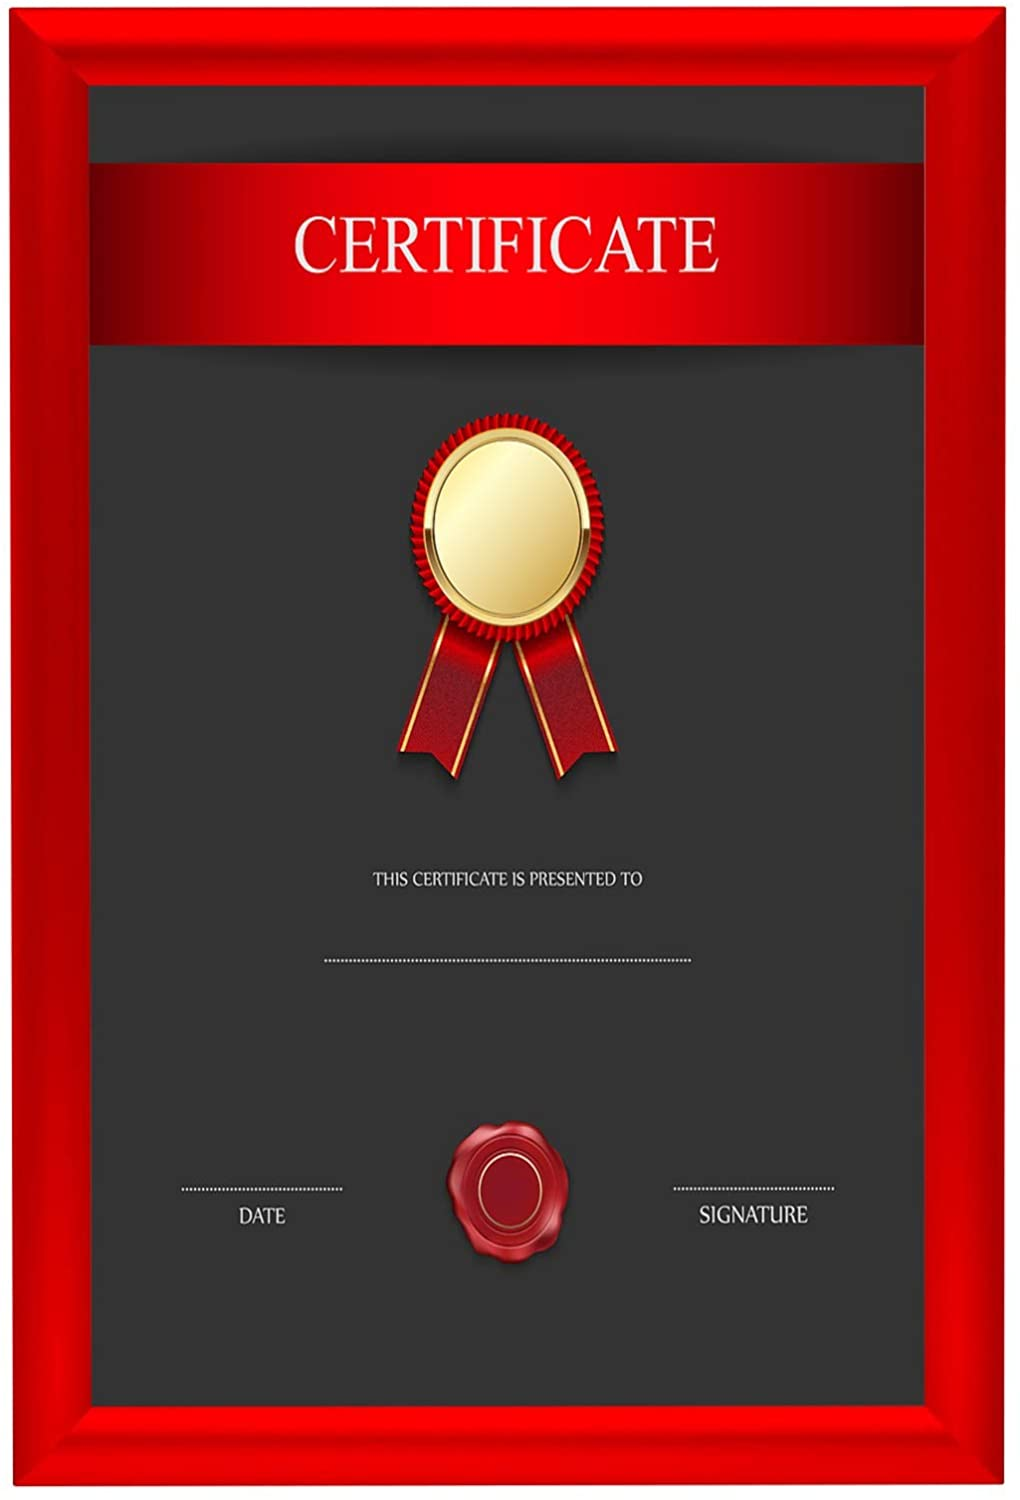 SnapeZo Poster Frame 11x17 Inches, Red 1 Inch Aluminum Profile, Front-Loading Snap Frame, Wall Mounting, Sleek Series